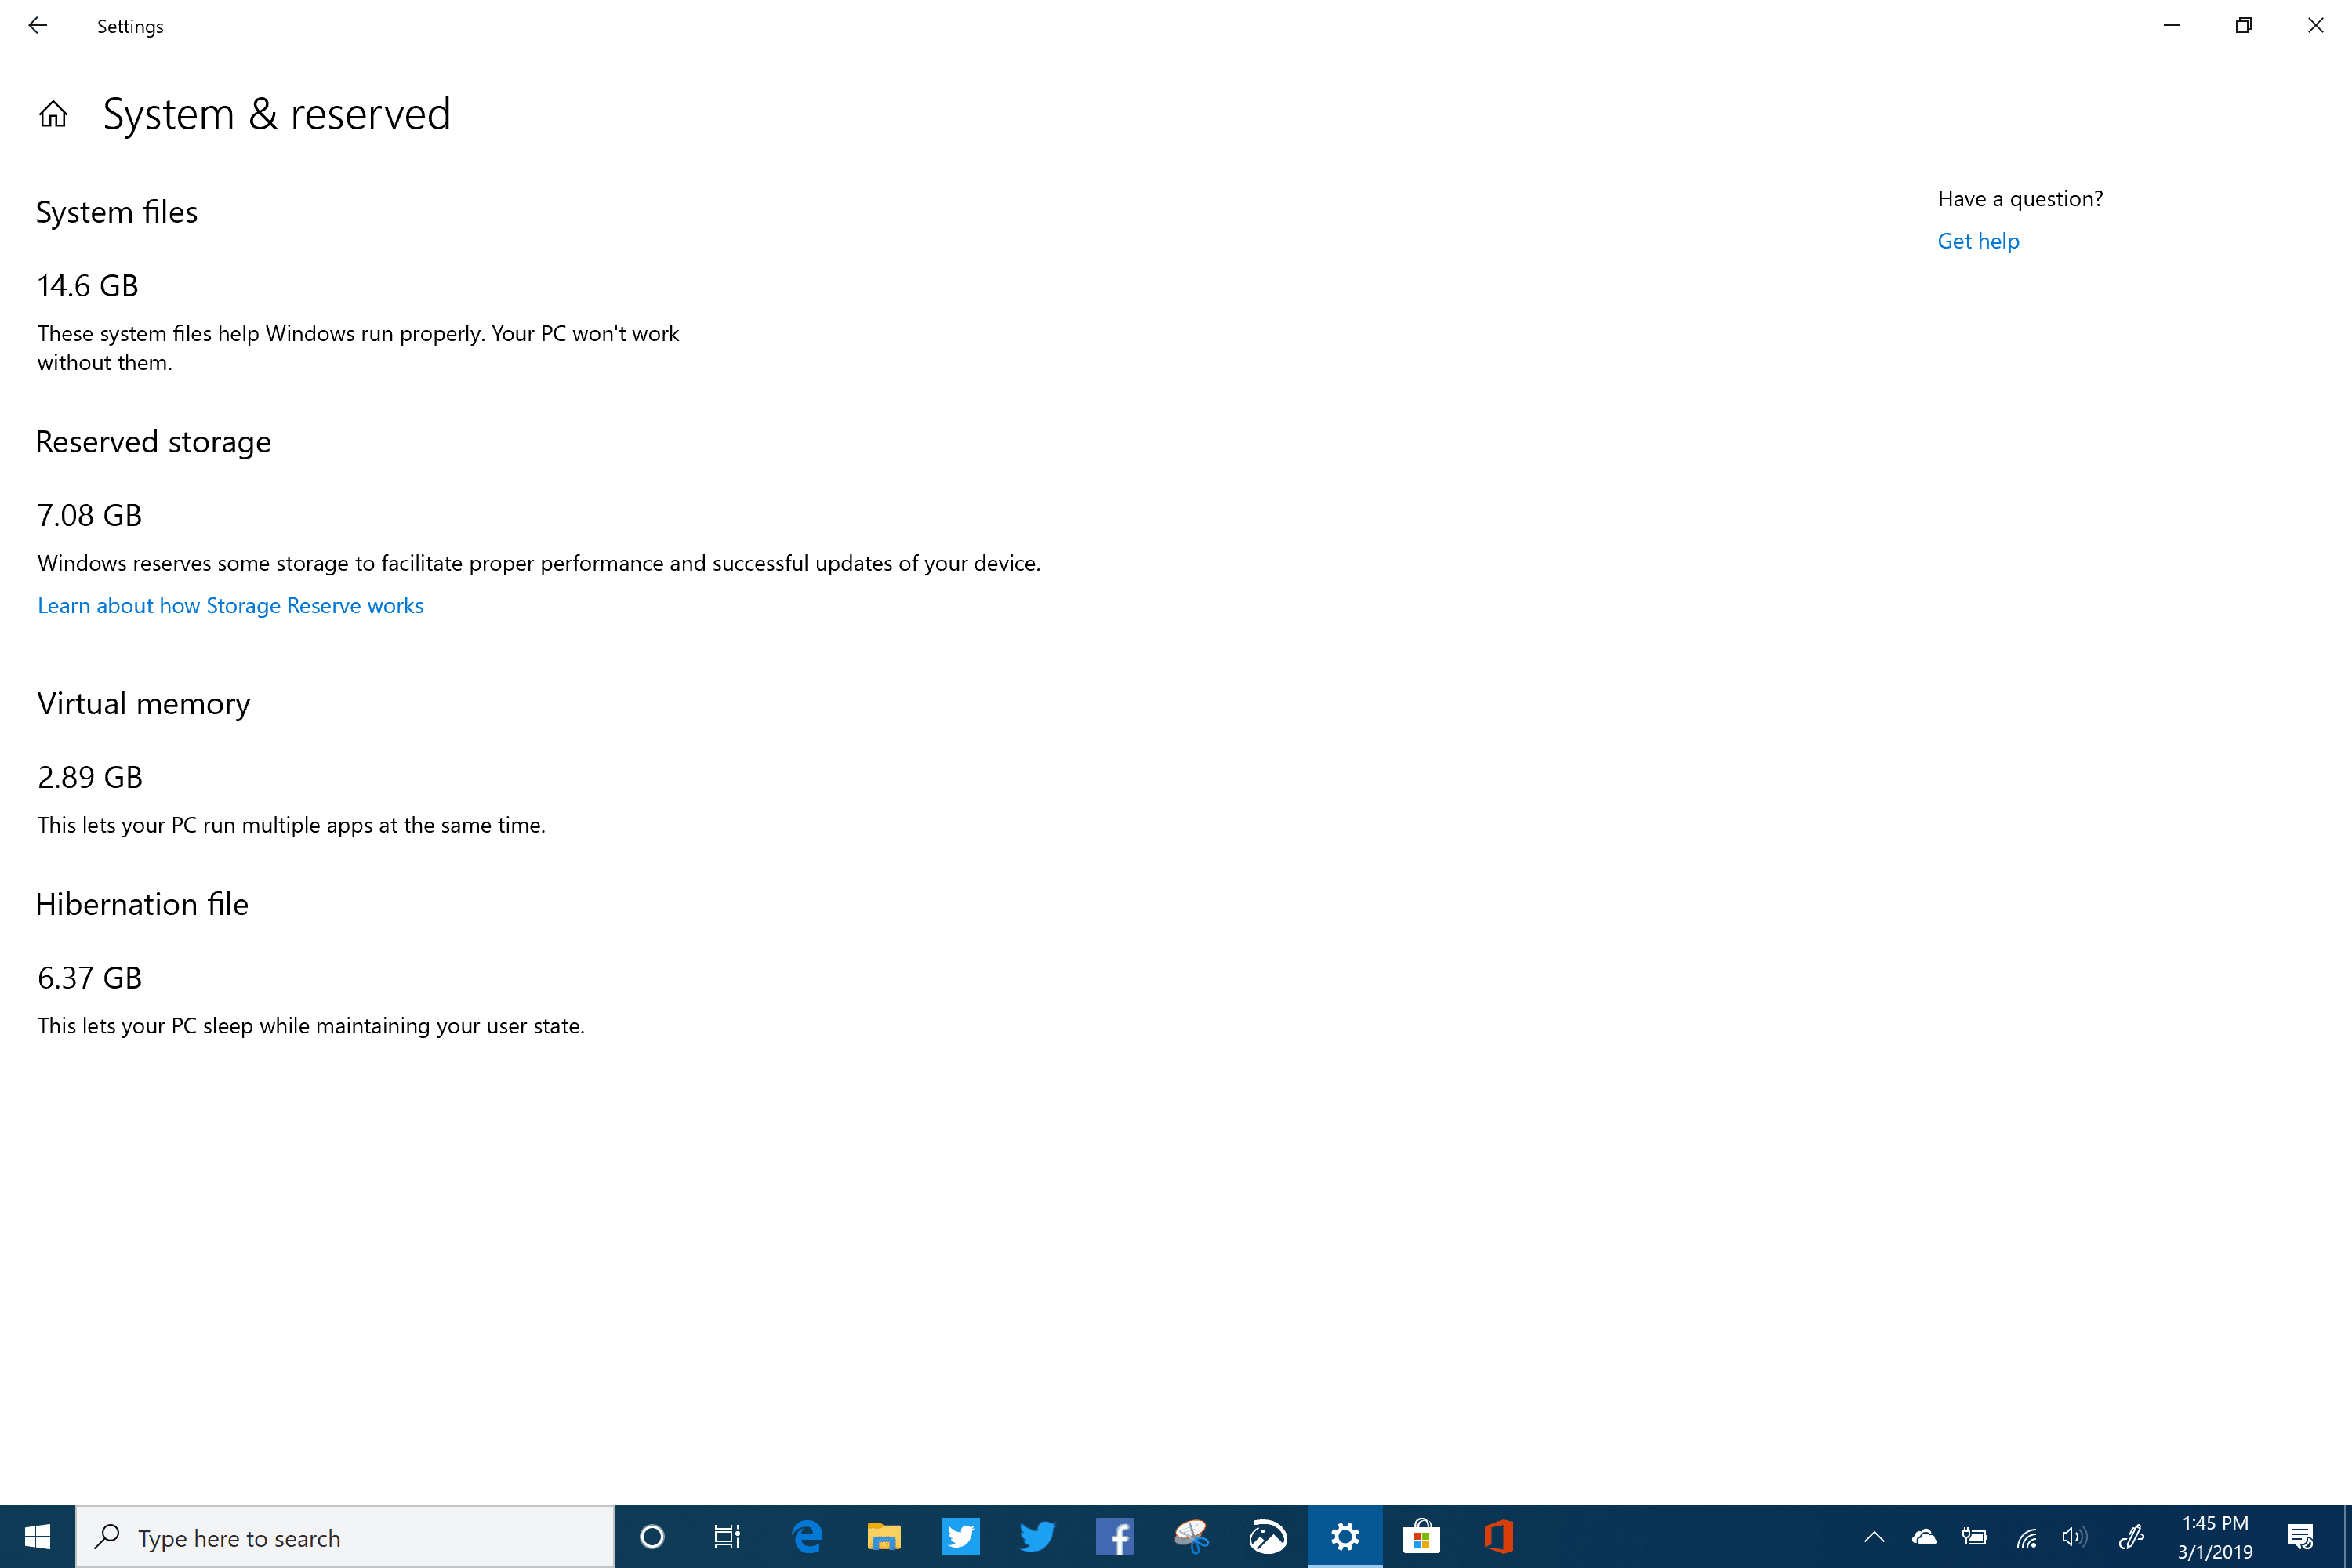 windows 10 (19H1) Reserved Storage - Surface Book